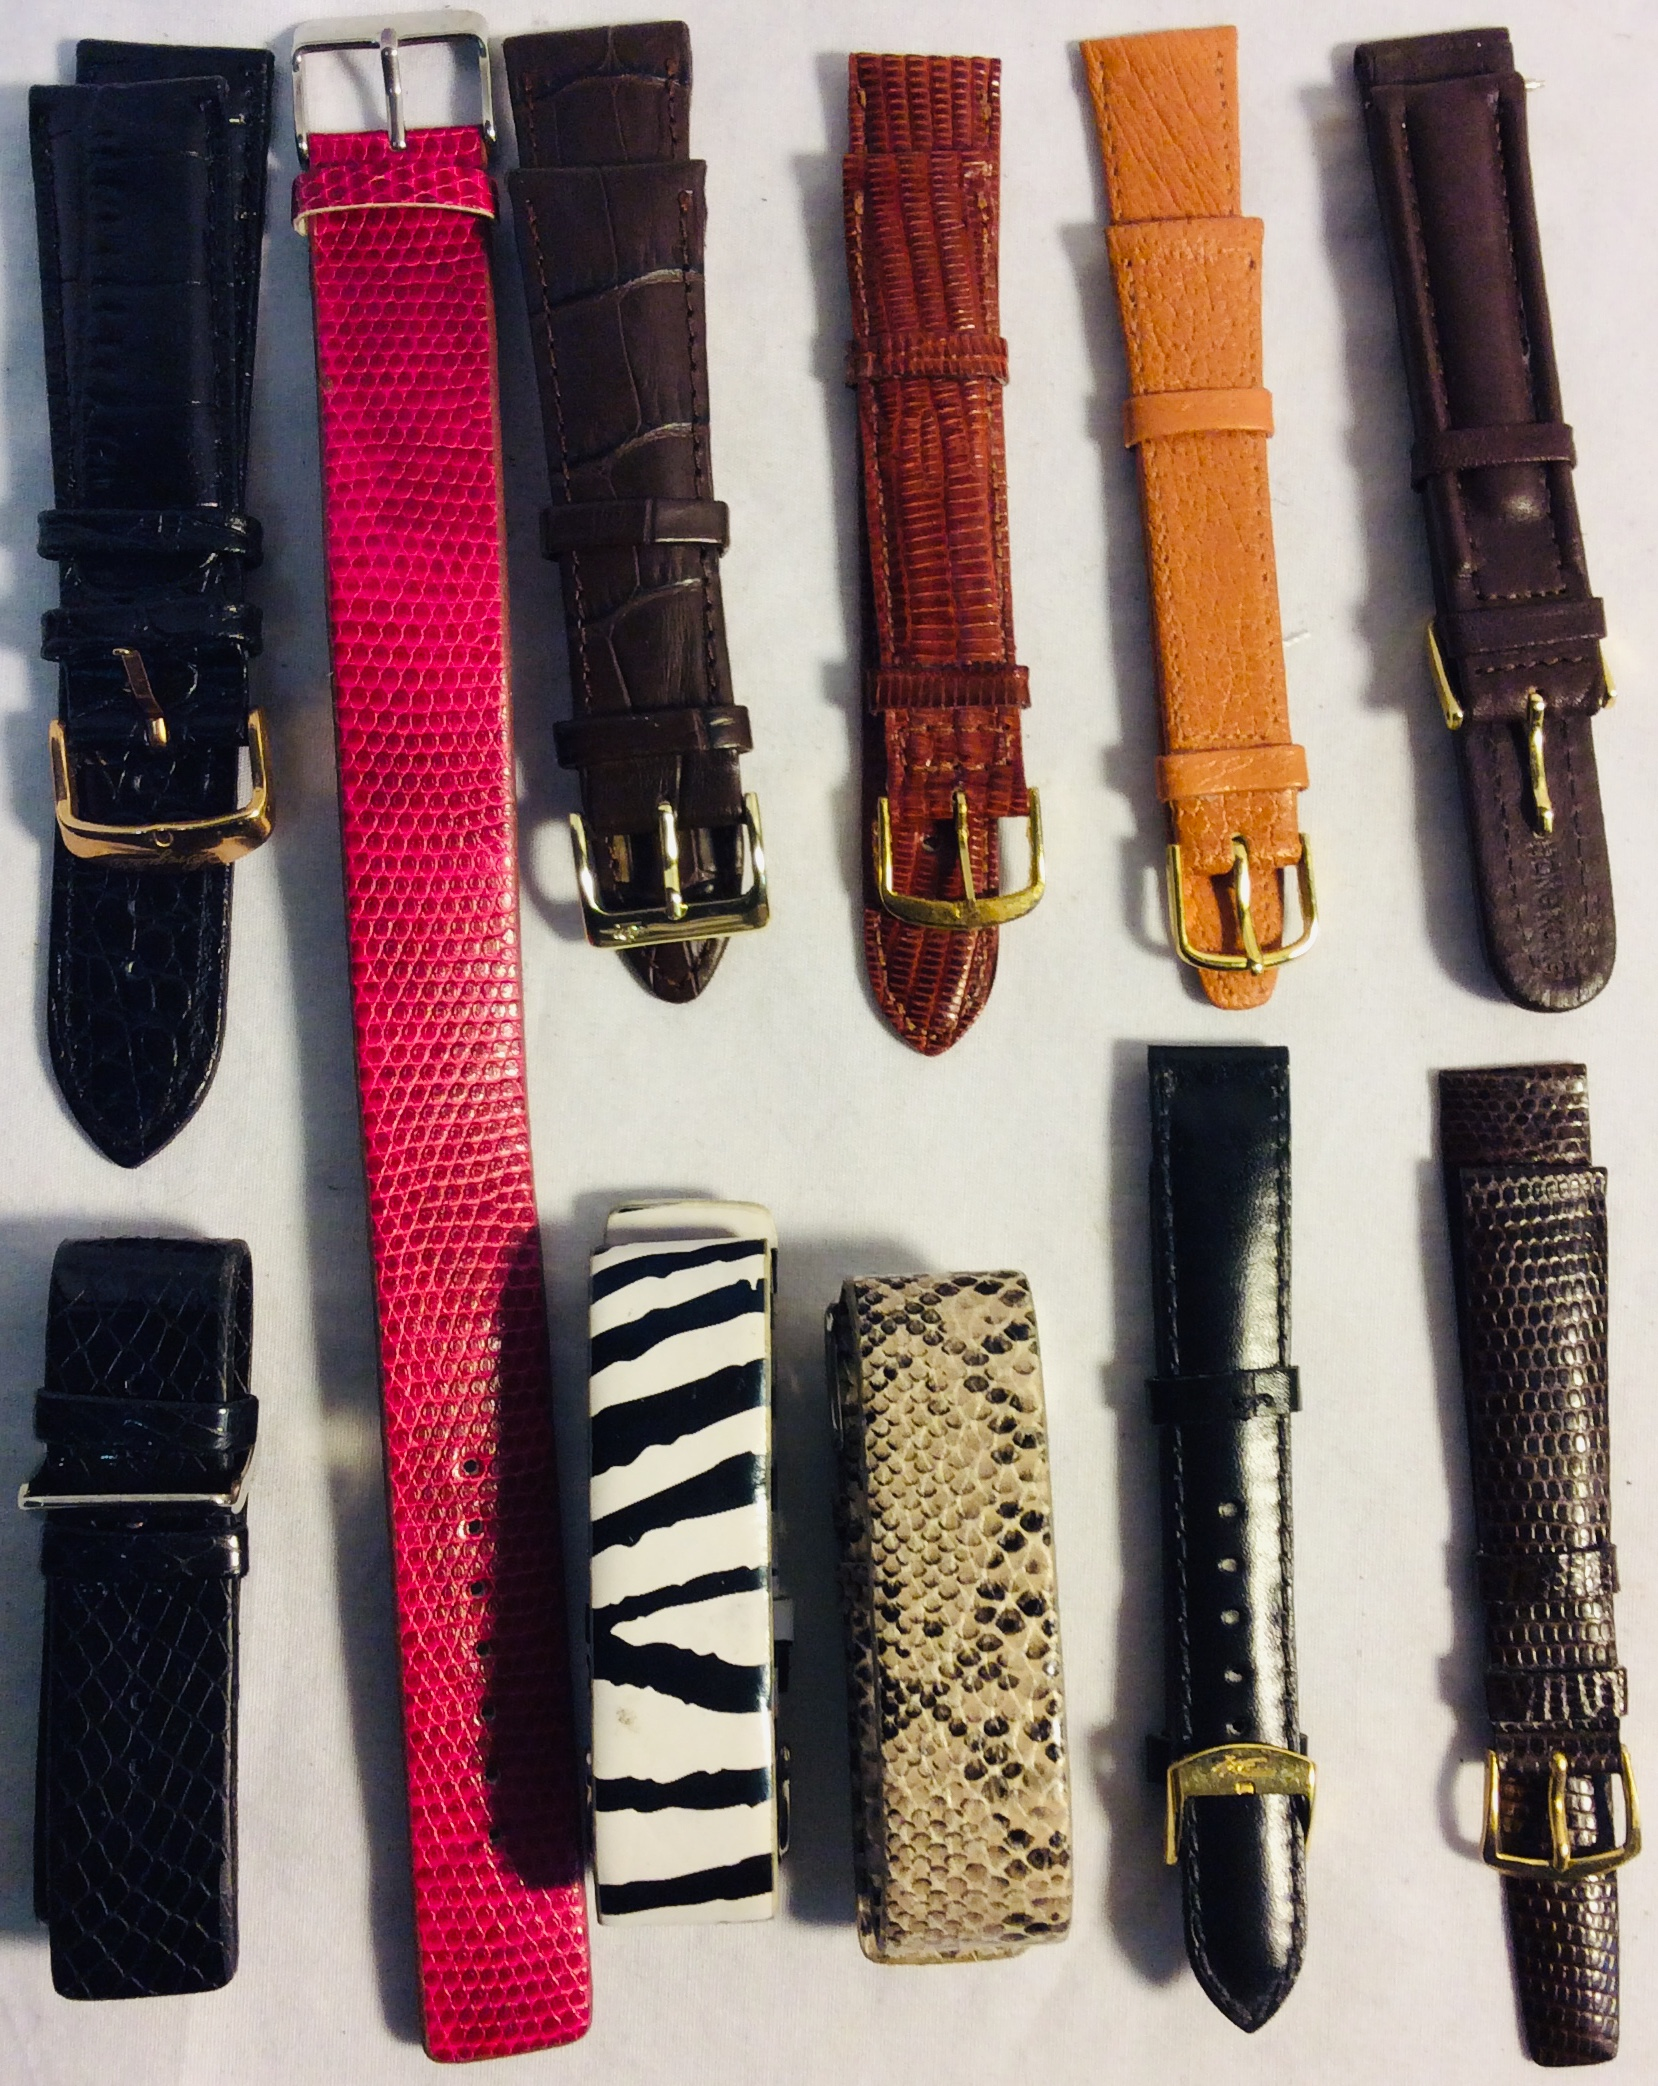 Assorted leather watch wristbands - doubles and singles